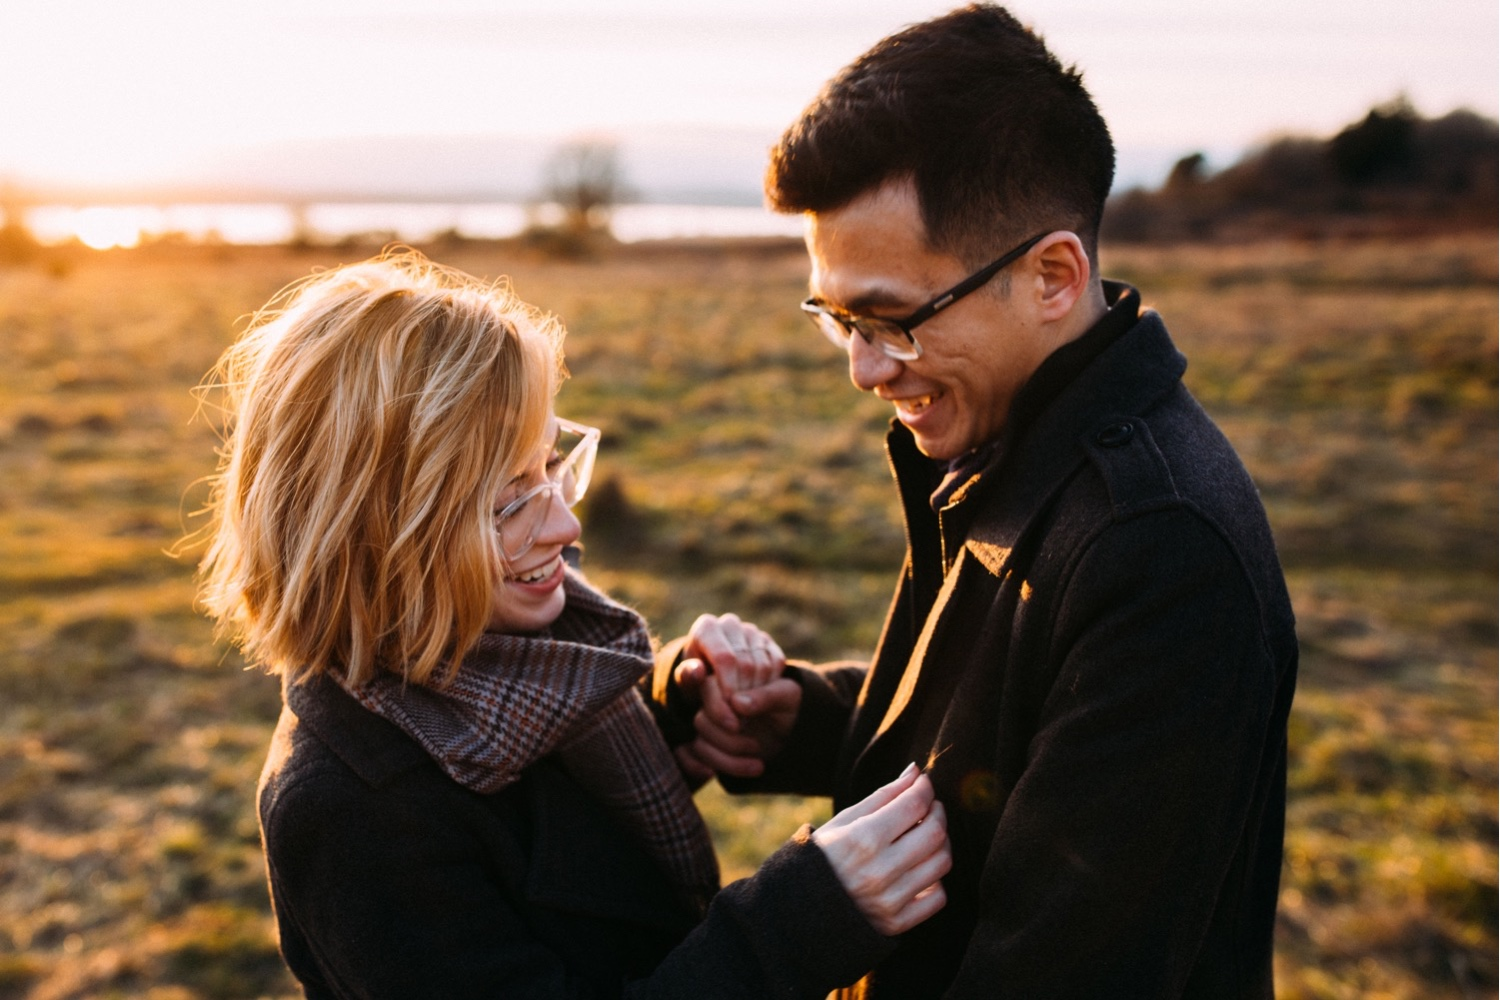 22_MC-105_champagne_sunsetproposal_adventure,_adventurous,_discoverypark_zoe_elopement_elopementphotographer_zoeburchardstudio_seattlebride_sunset_burchard_proposal,_seattle_photographer.jpg